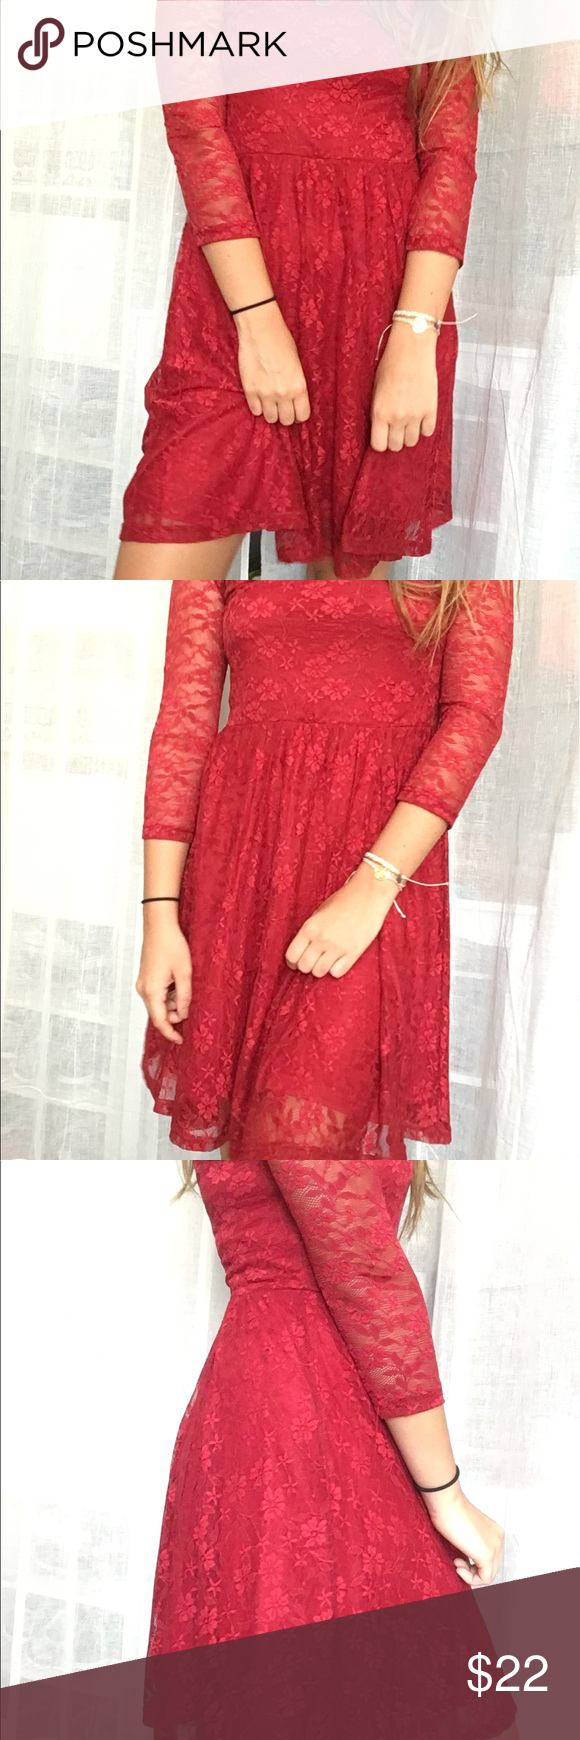 Red lace dress red lace dress with cropped sleeves never worn